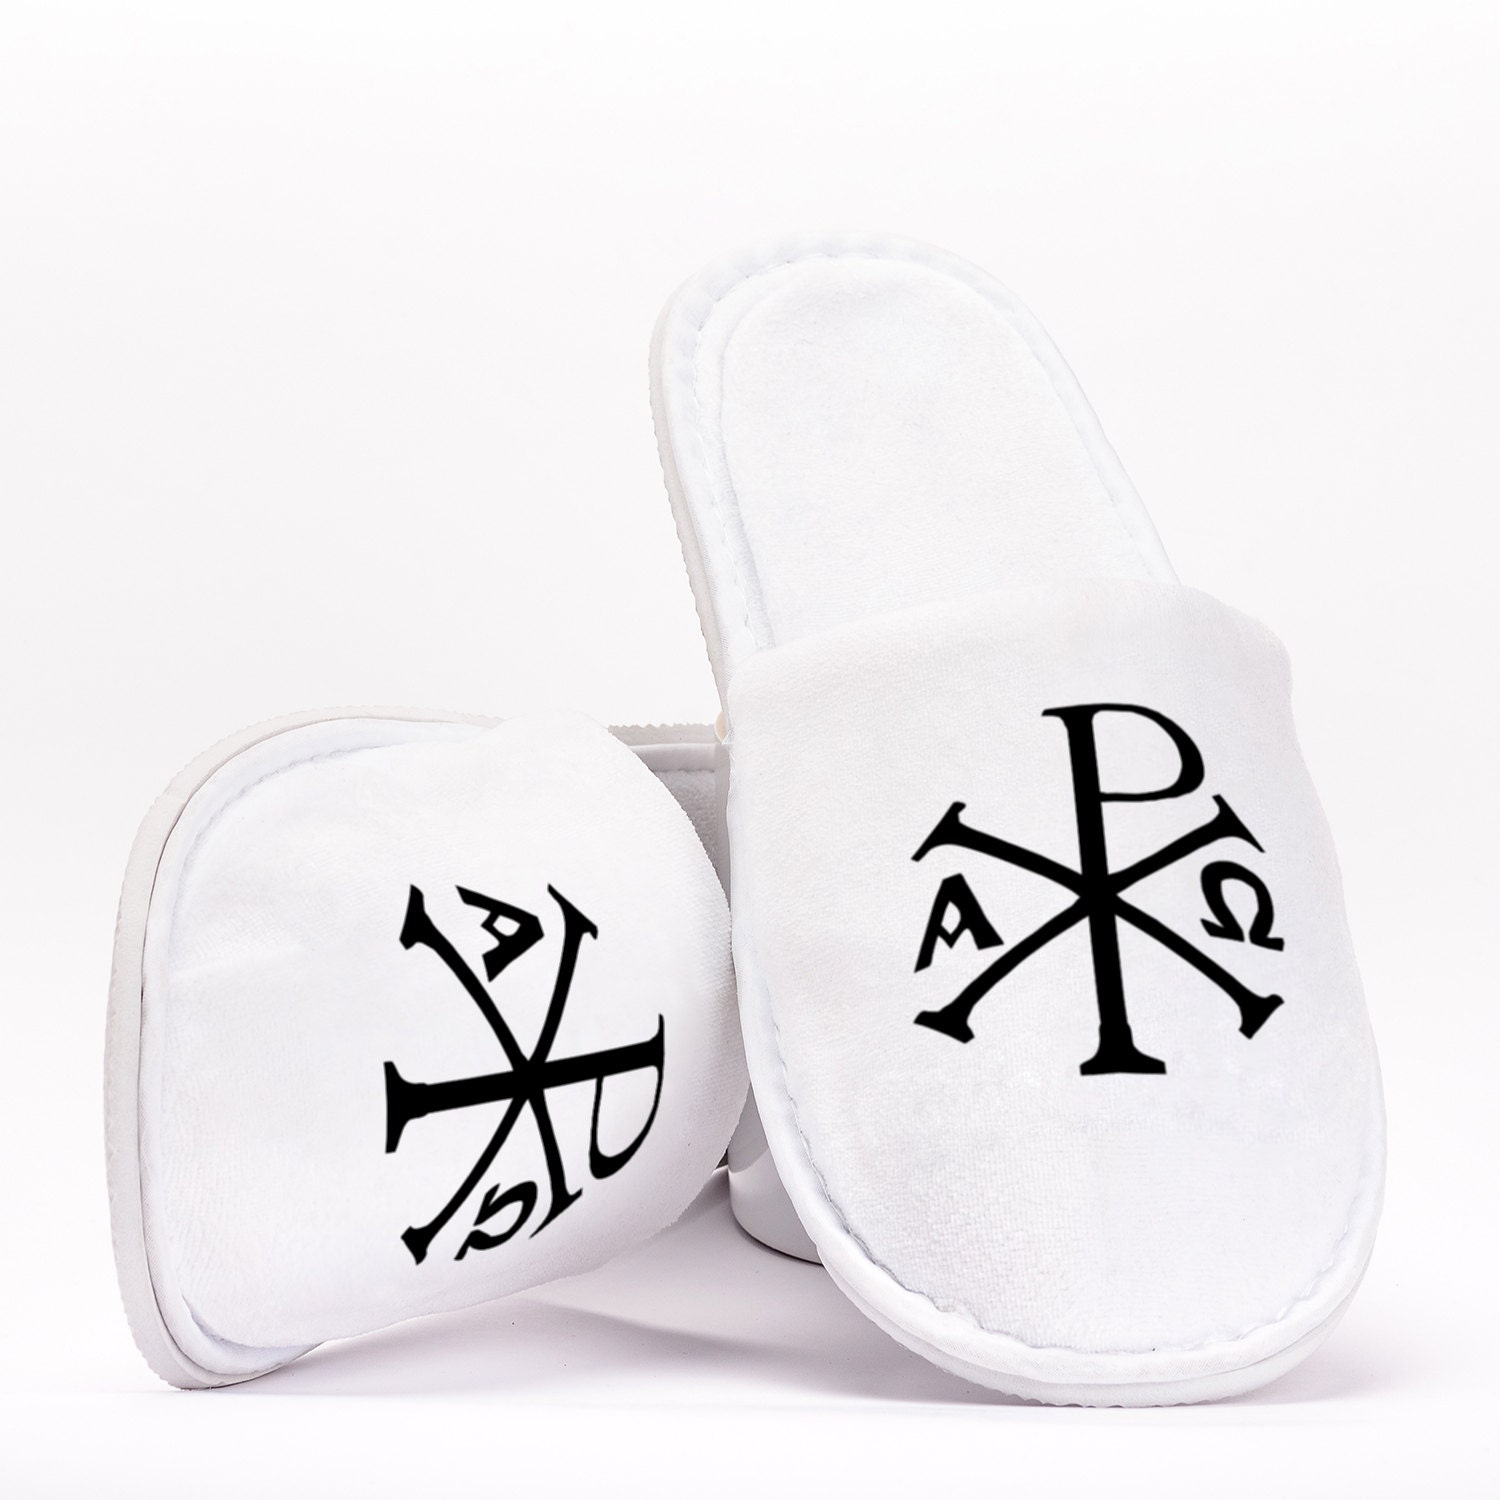 The chi rho symbol images symbol and sign ideas chi rho xp christ christian symbol monogram slippers gift description chi rho xp christ christian symbol buycottarizona Images